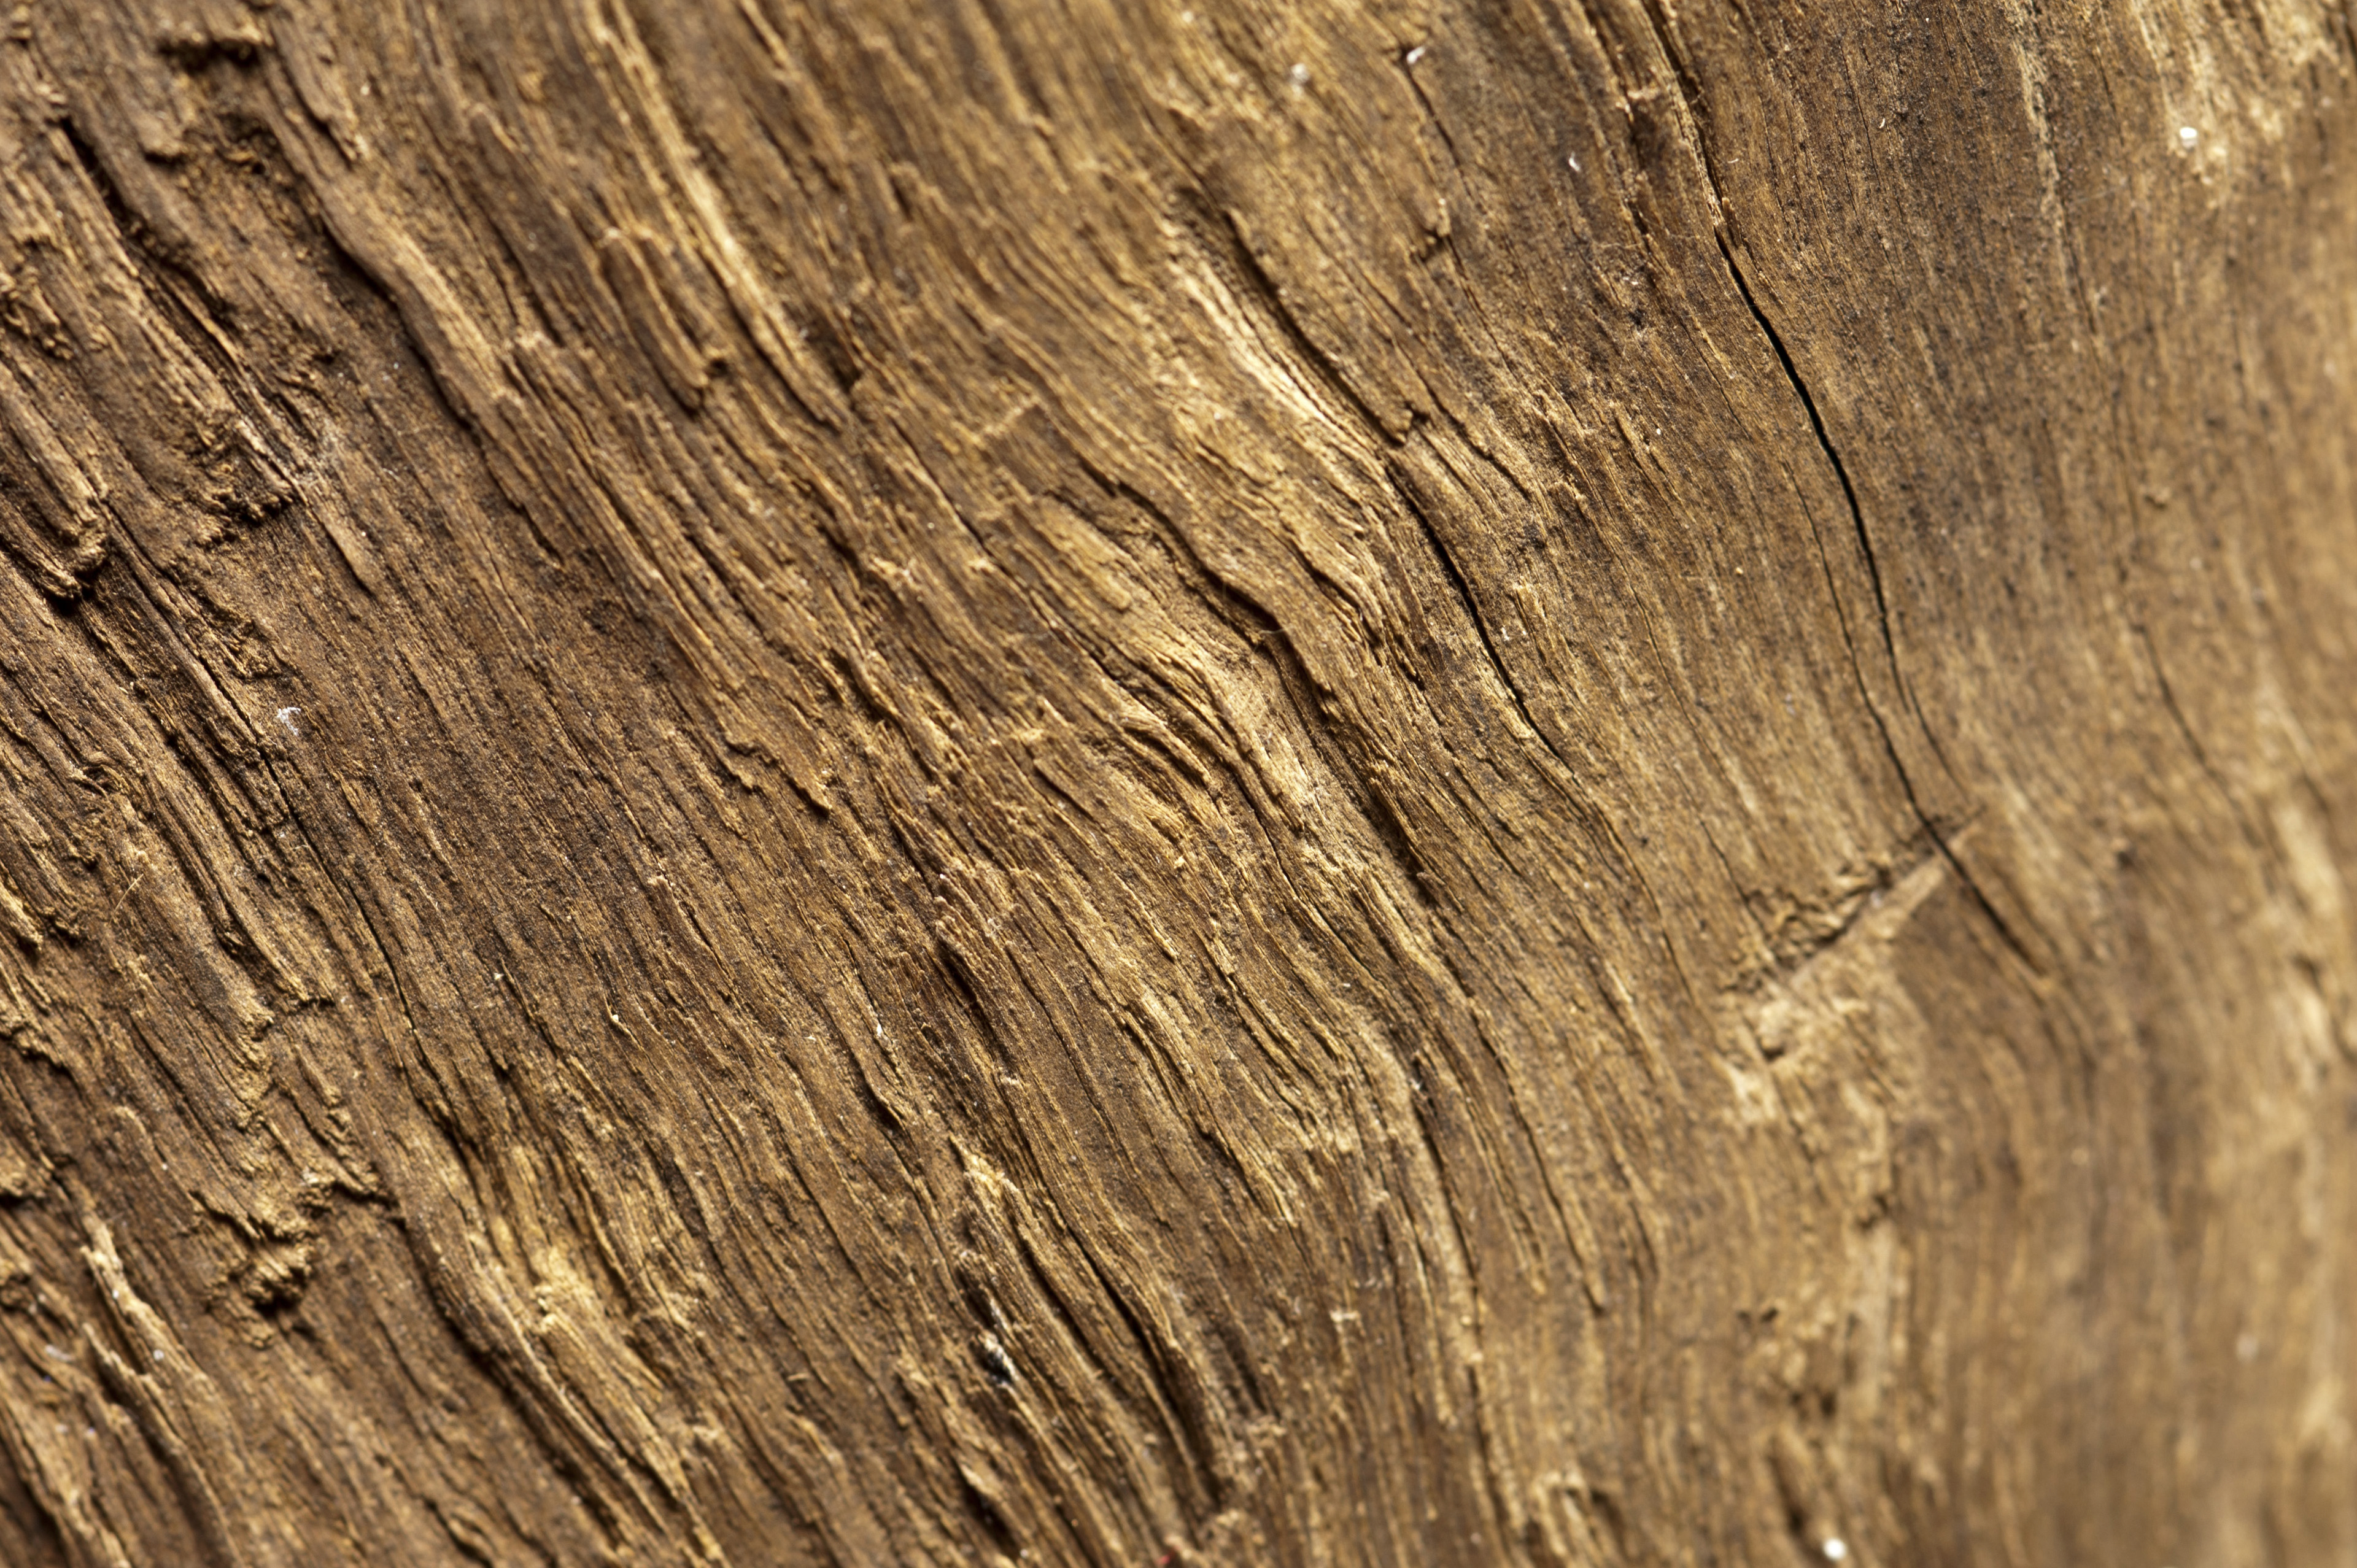 Image of Brown irregular rough wooden surface, close-up | Freebie ...